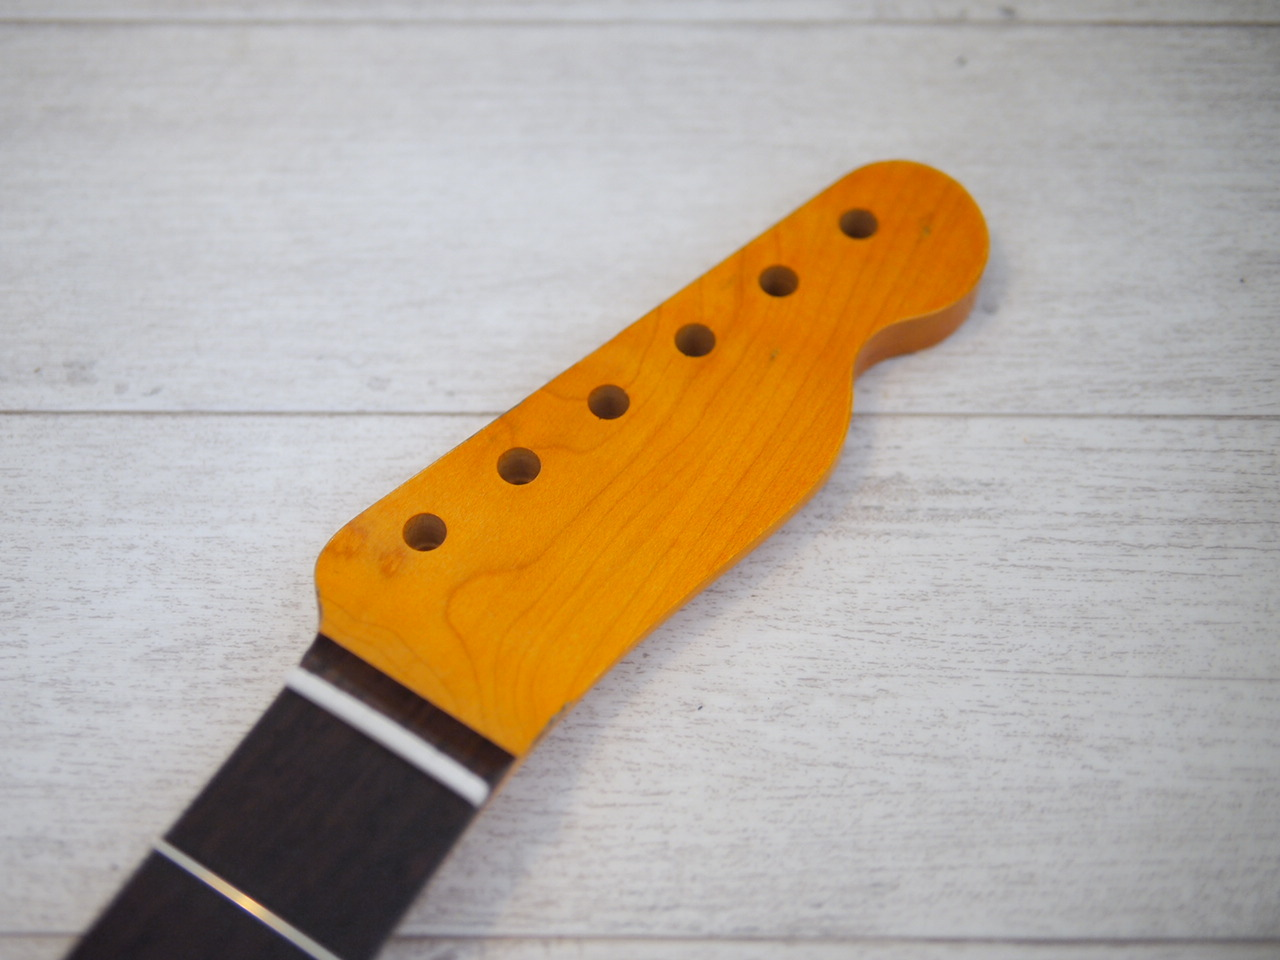 ALLPARTS Telecaster Neck - Maple/Indian Rosewood - 21F/Slab - Vintage Amber - Relic